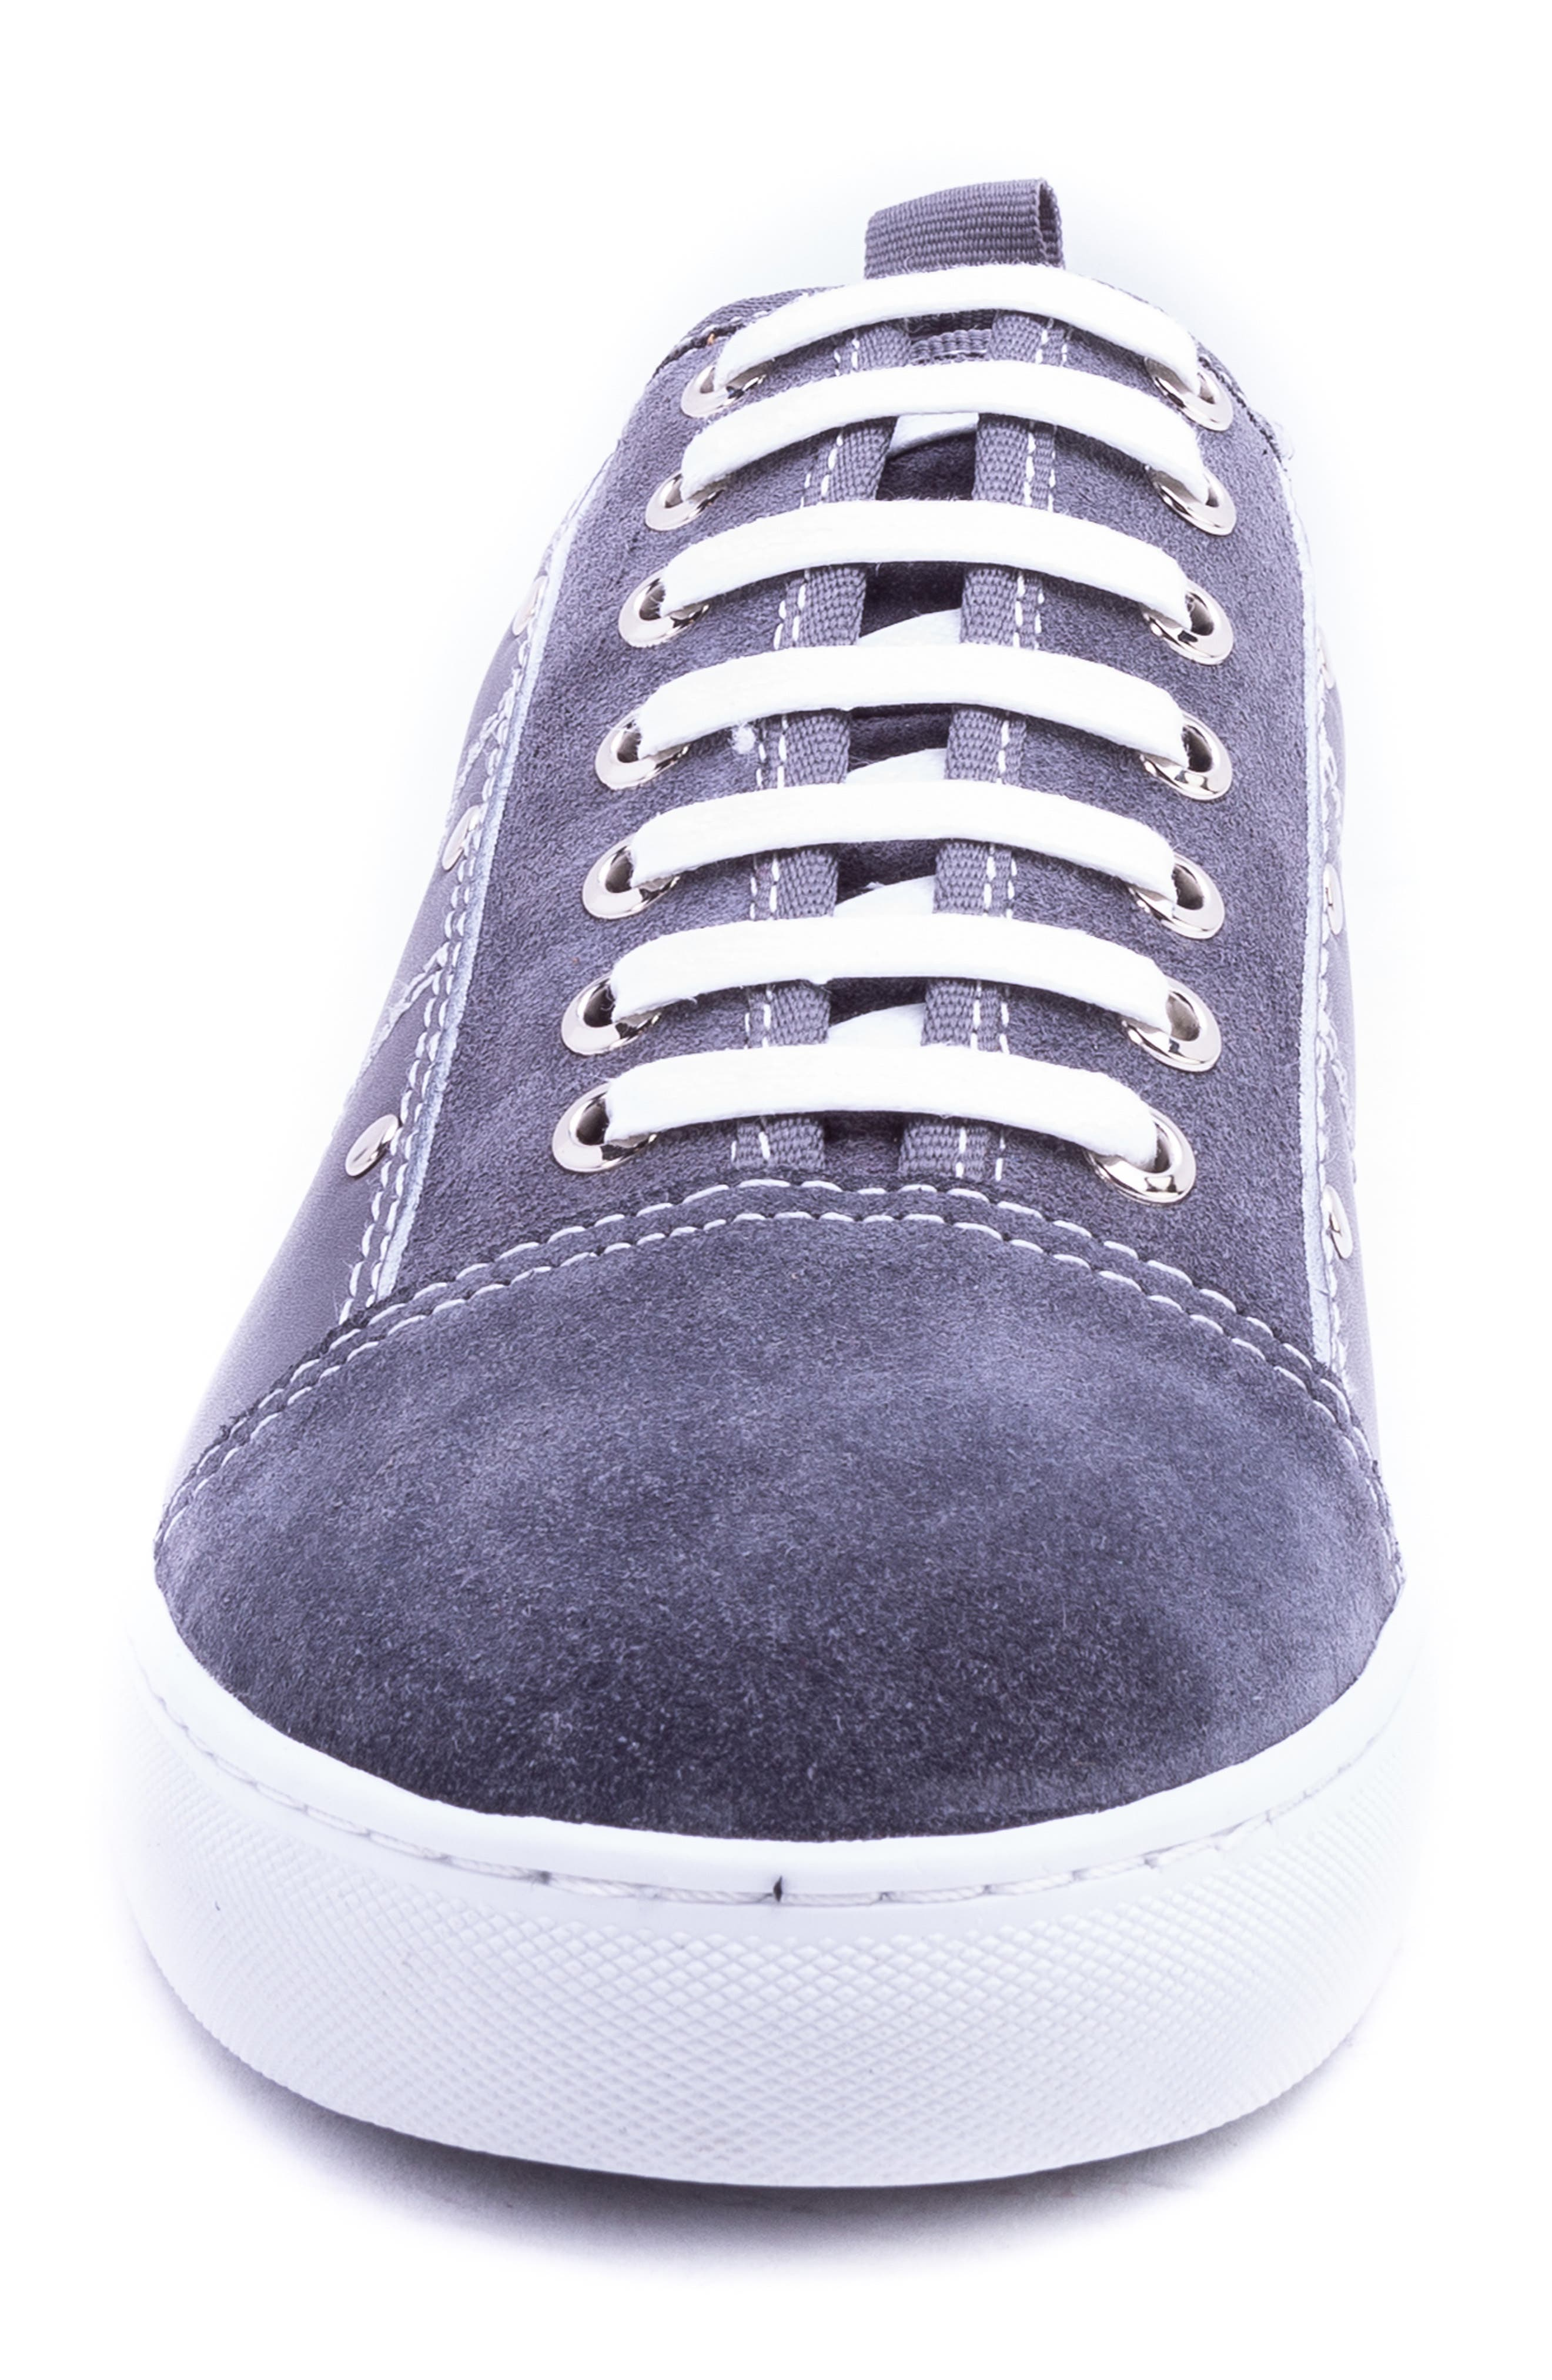 Severn Studded Low Top Sneaker,                             Alternate thumbnail 4, color,                             GREY SUEDE/ LEATHER